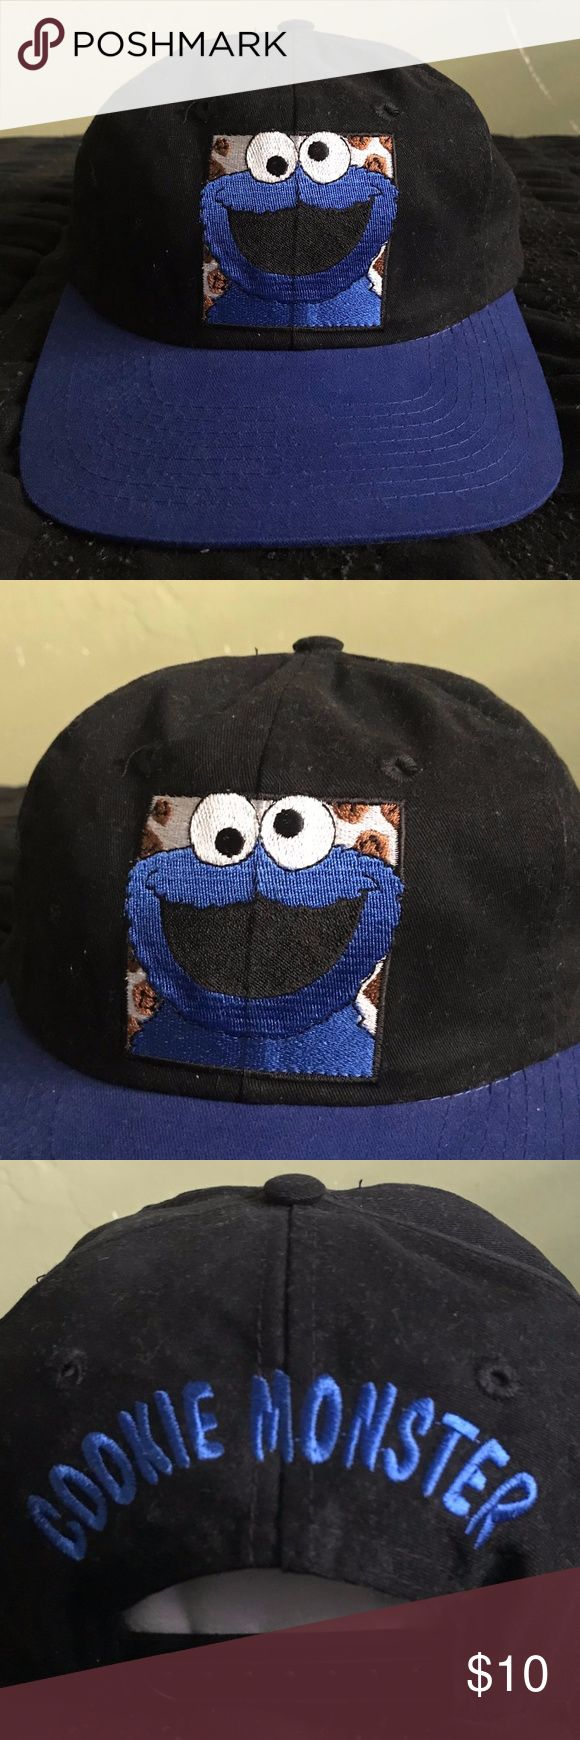 VTG 90's COOKIE MONSTER SESAME STREET SNAPBACK NEW Details:  Great new condition! No stains or holes. Unworn item. Black cap with blue brim. Cookie Monster character embroidered on front of caps. Cookie Monster spell-out embroidered on back of cap above snap adjustment. Vintage green under-brim. Original inside tags.  *Ships from US.  *Same or next day shipping.  *First-Class US shipping (delivery in 1 to 3 business days).  *First-Class International shipping (delivery in 7 to 21 business…